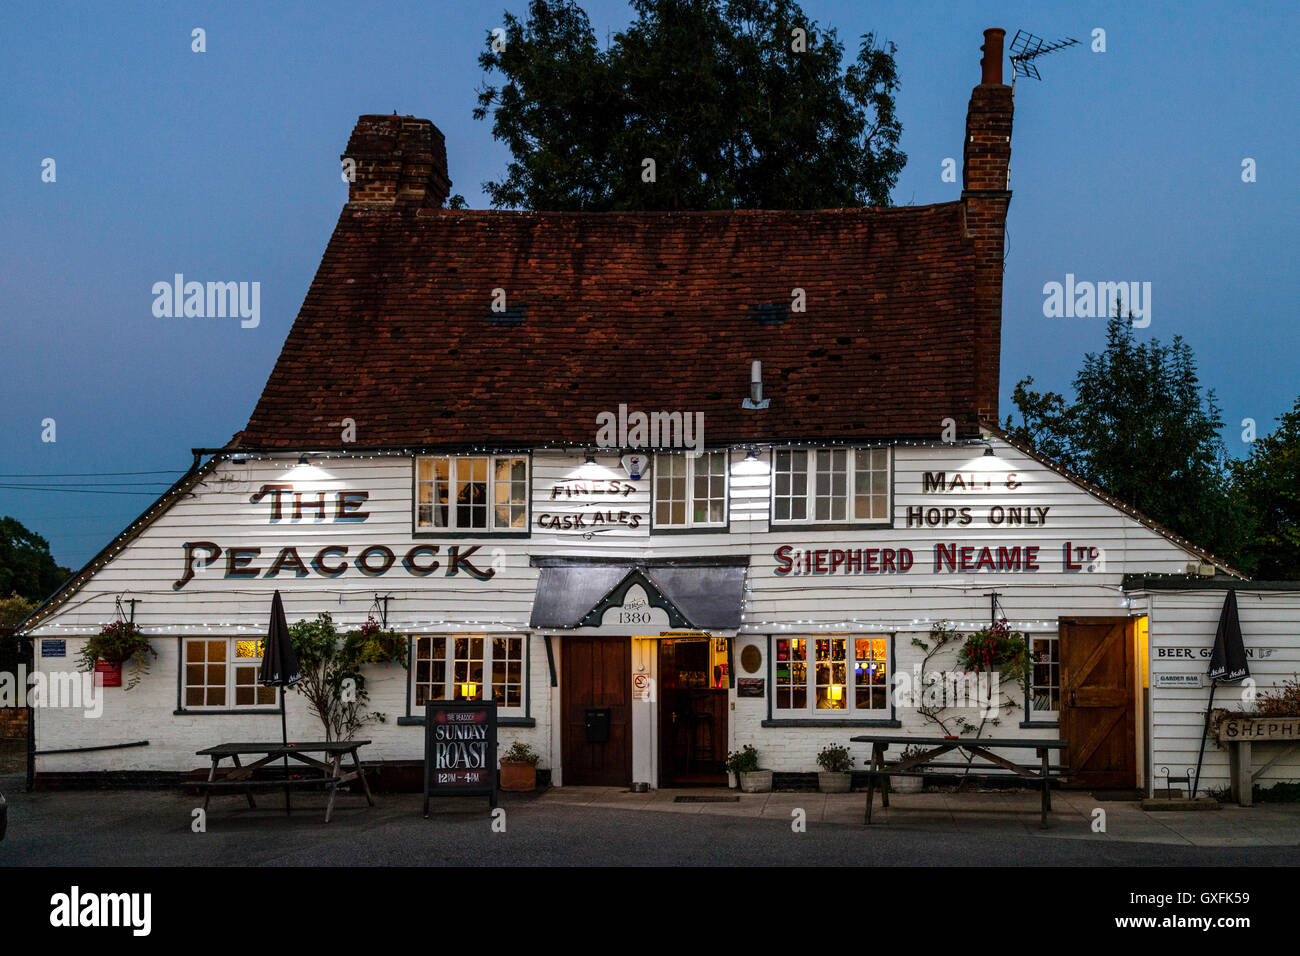 The Peacock Public House, Goudhurst, Kent, UK - Stock Image